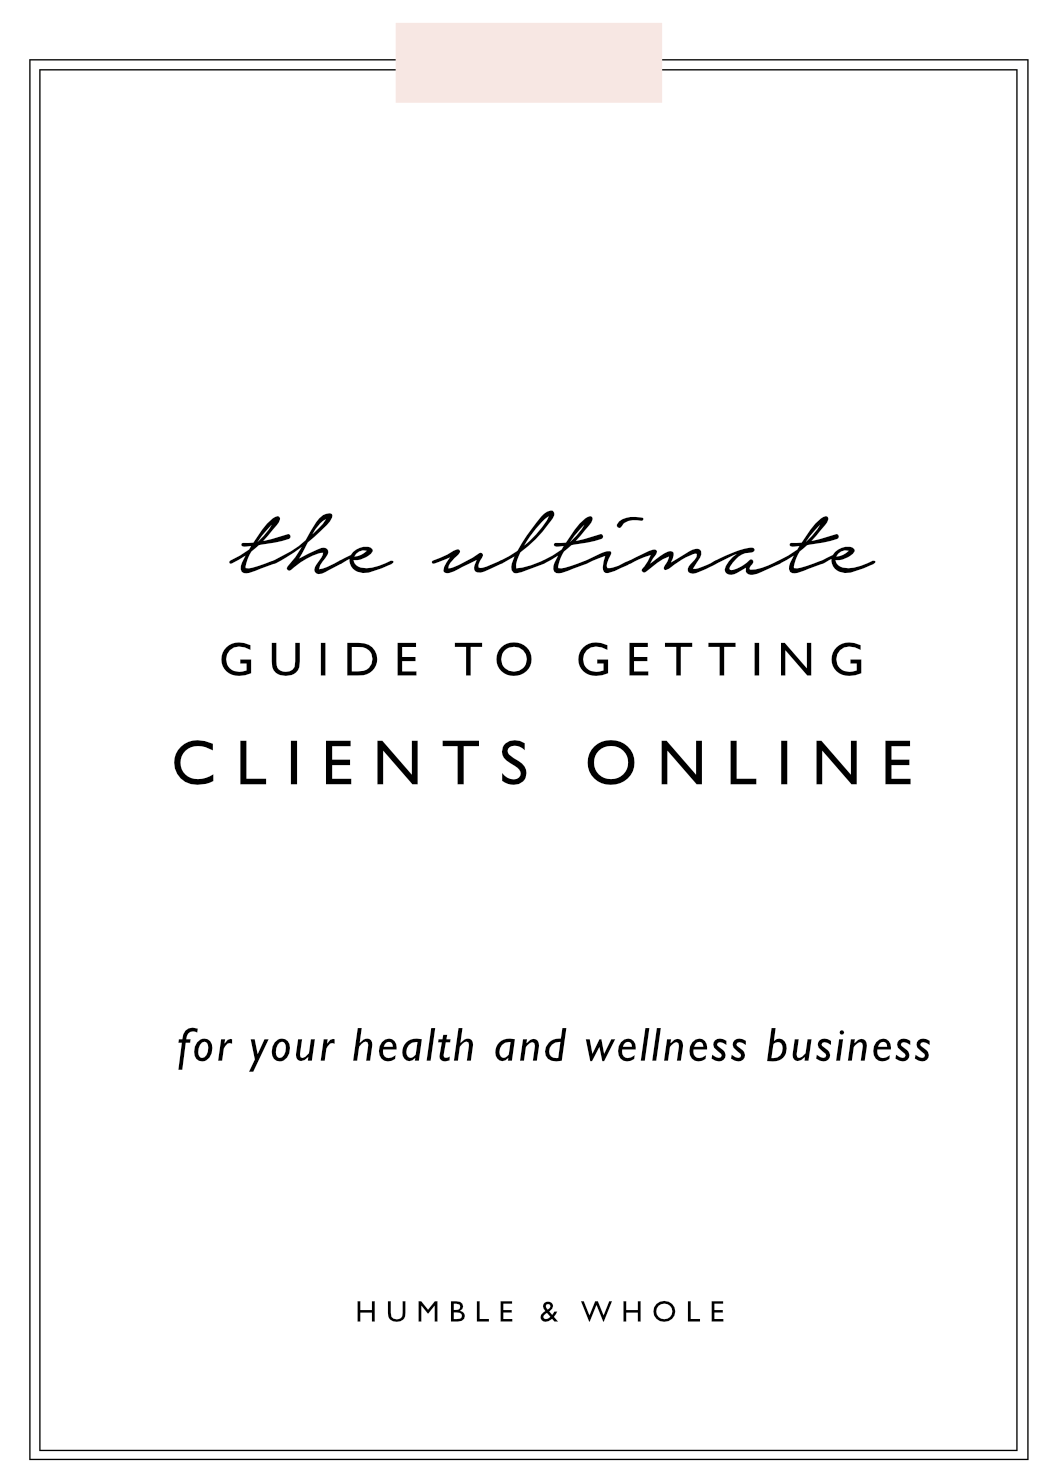 Ok, hands down, the number one issue we see health and wellness professionals asking for help with is: how do I get more clients? And it's a popular ask for a reason. In order to build a sustainable business, you've got to be able to regularly attract and sign clients to work with. In this post, we're sharing seven surefire ways to consistently land clients for your health and/or wellness online business.